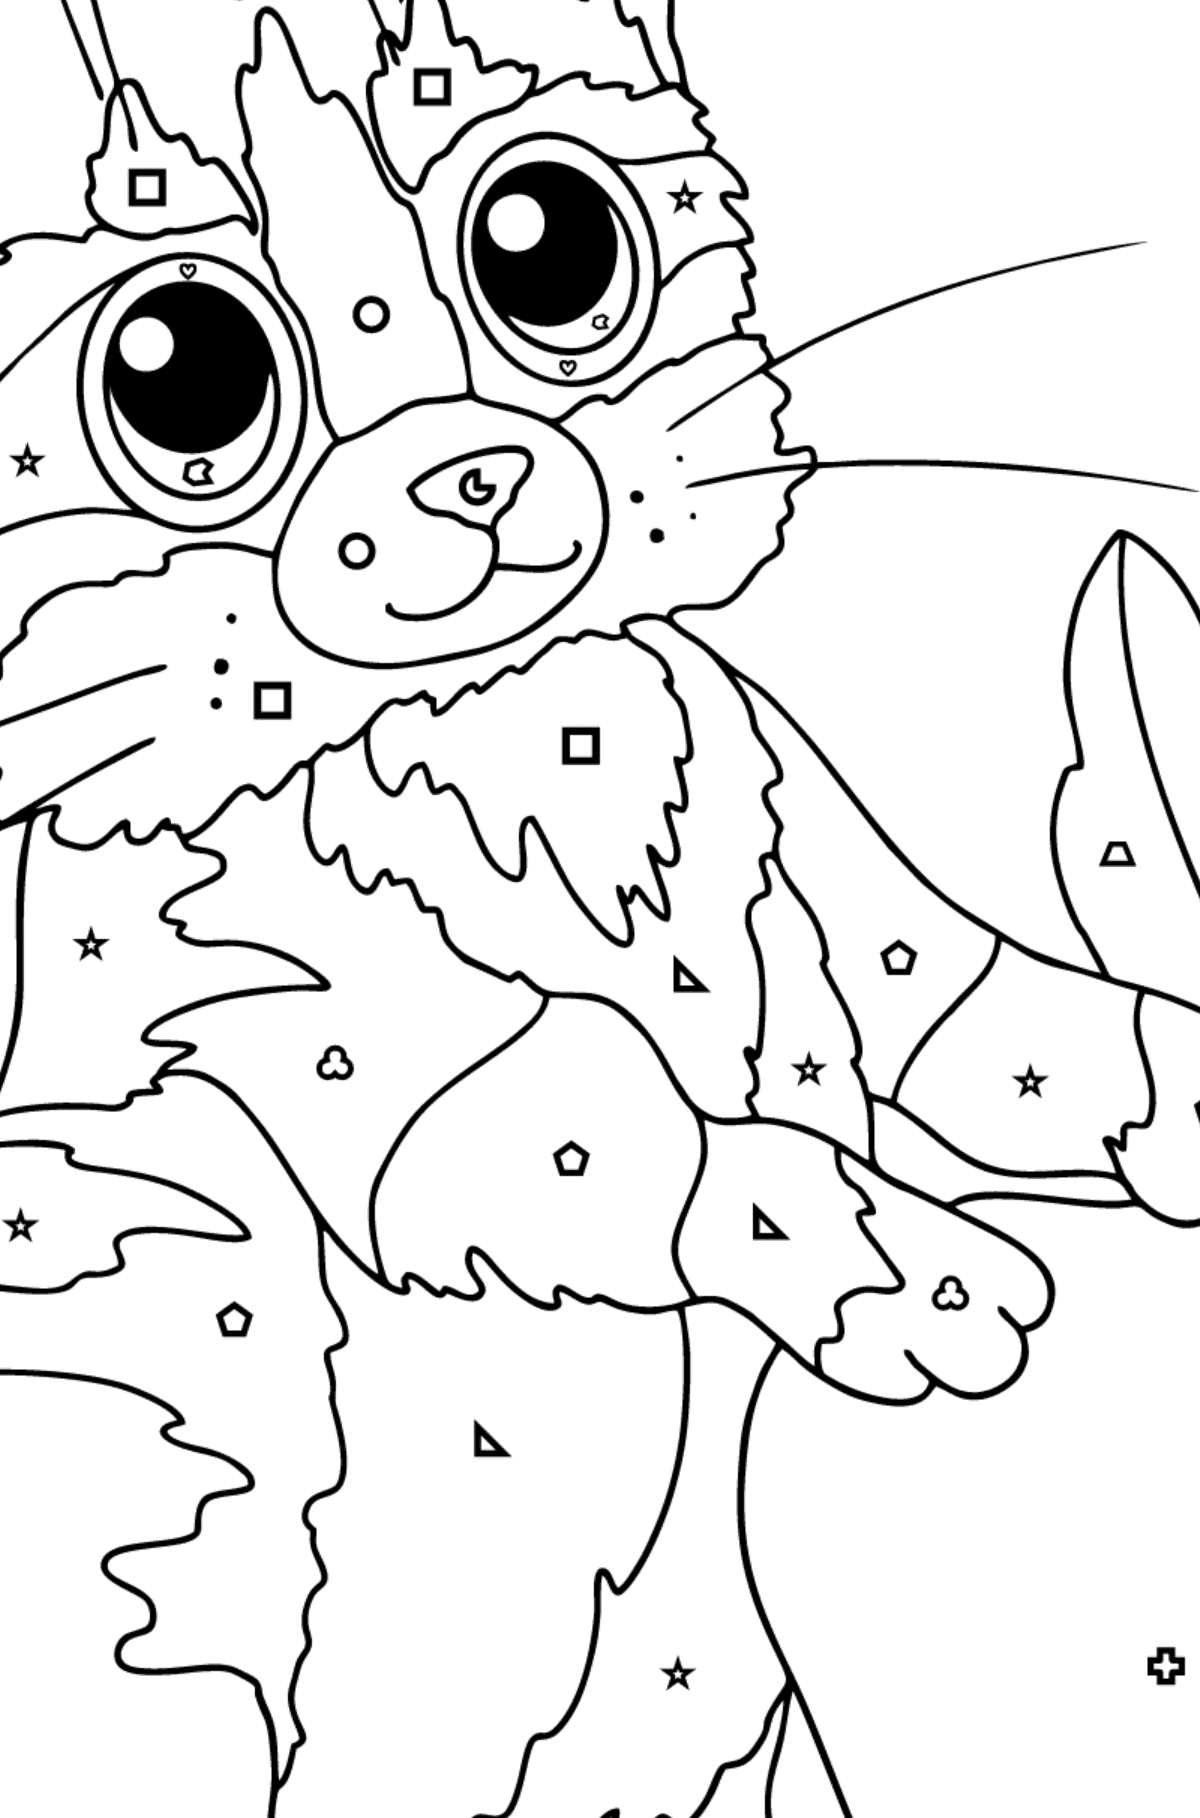 Coloring Page - A Cat and a Ripe Apple - Coloring by Geometric Shapes for Kids